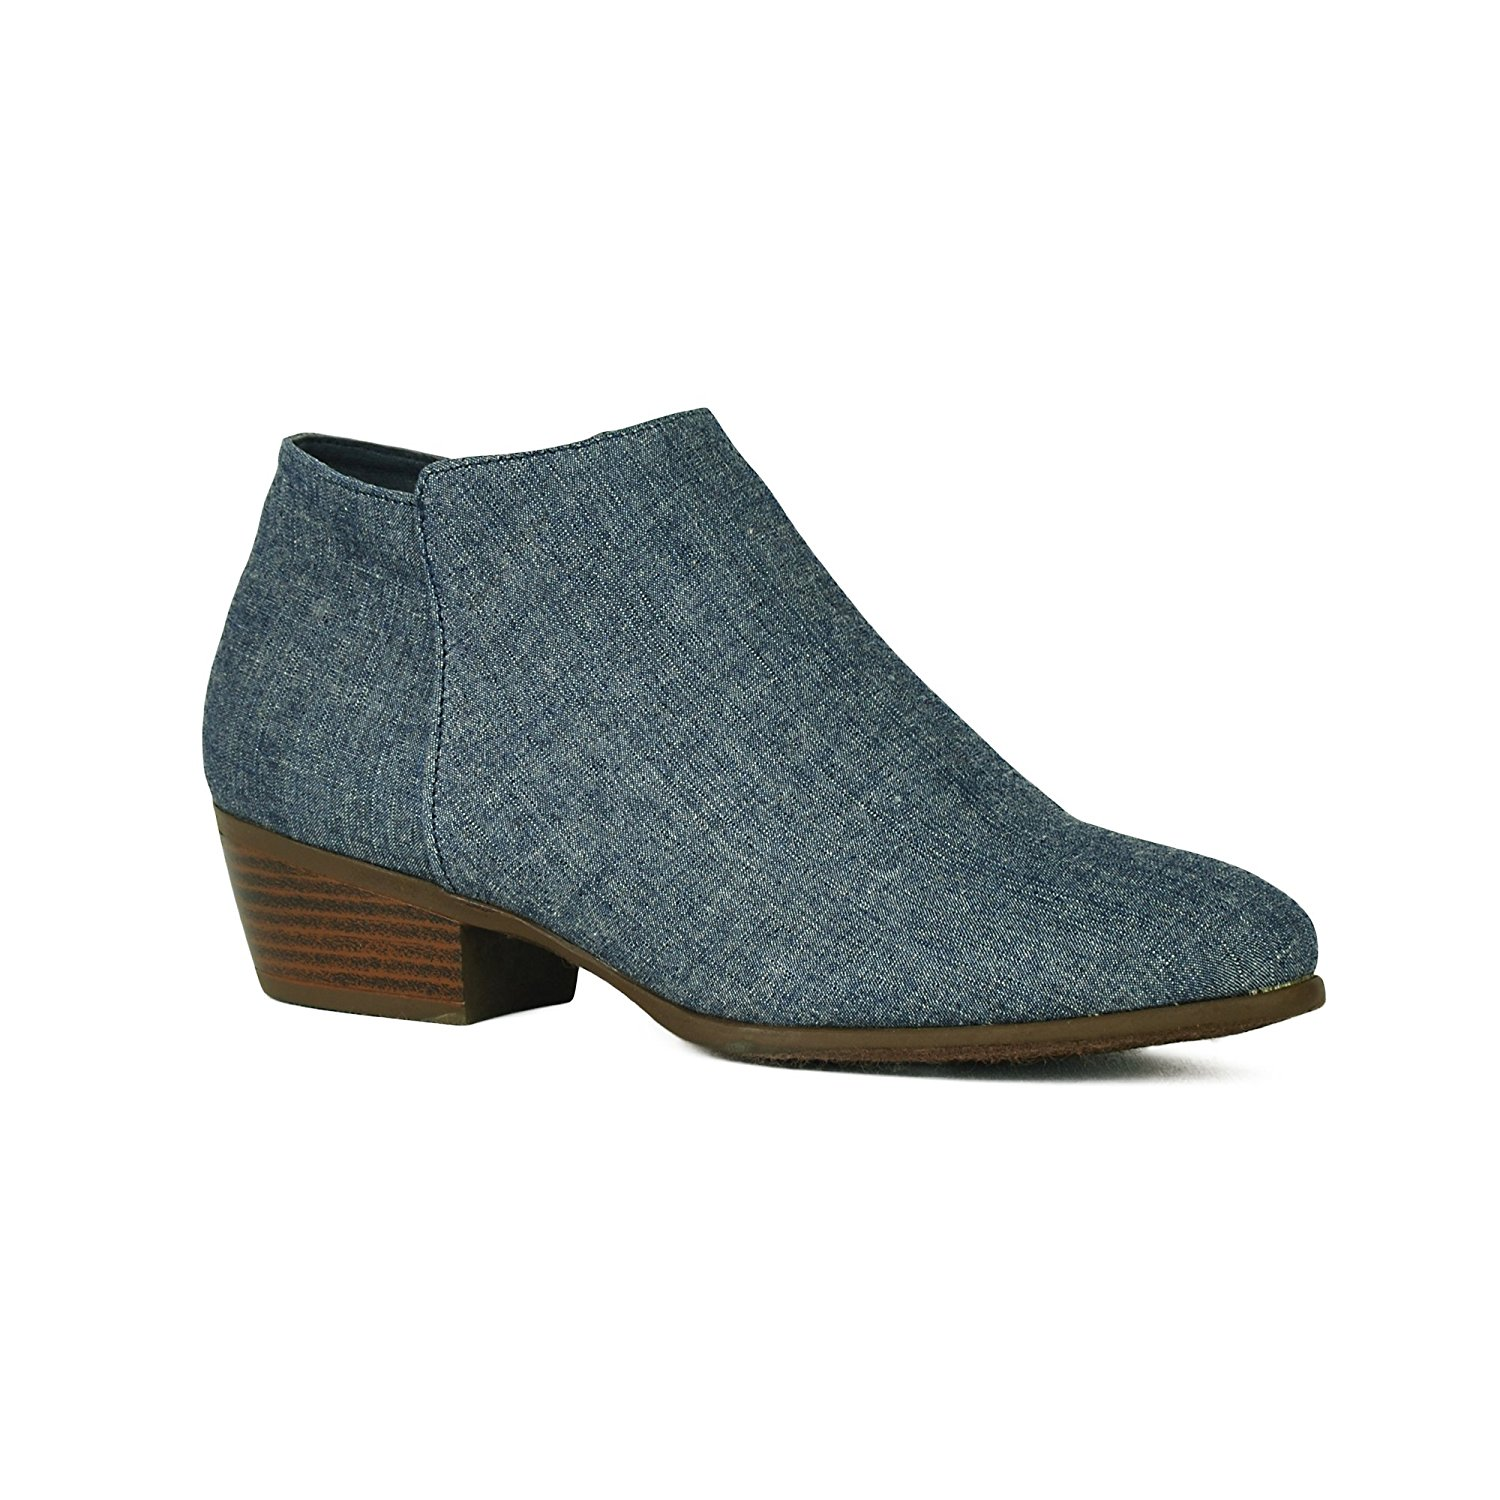 ShoBeautiful Women's Stacked Block Heel Booties Cowgirl Side Zip Low Chunky Heel Casual Western Ankle Boots Slip On Shoes